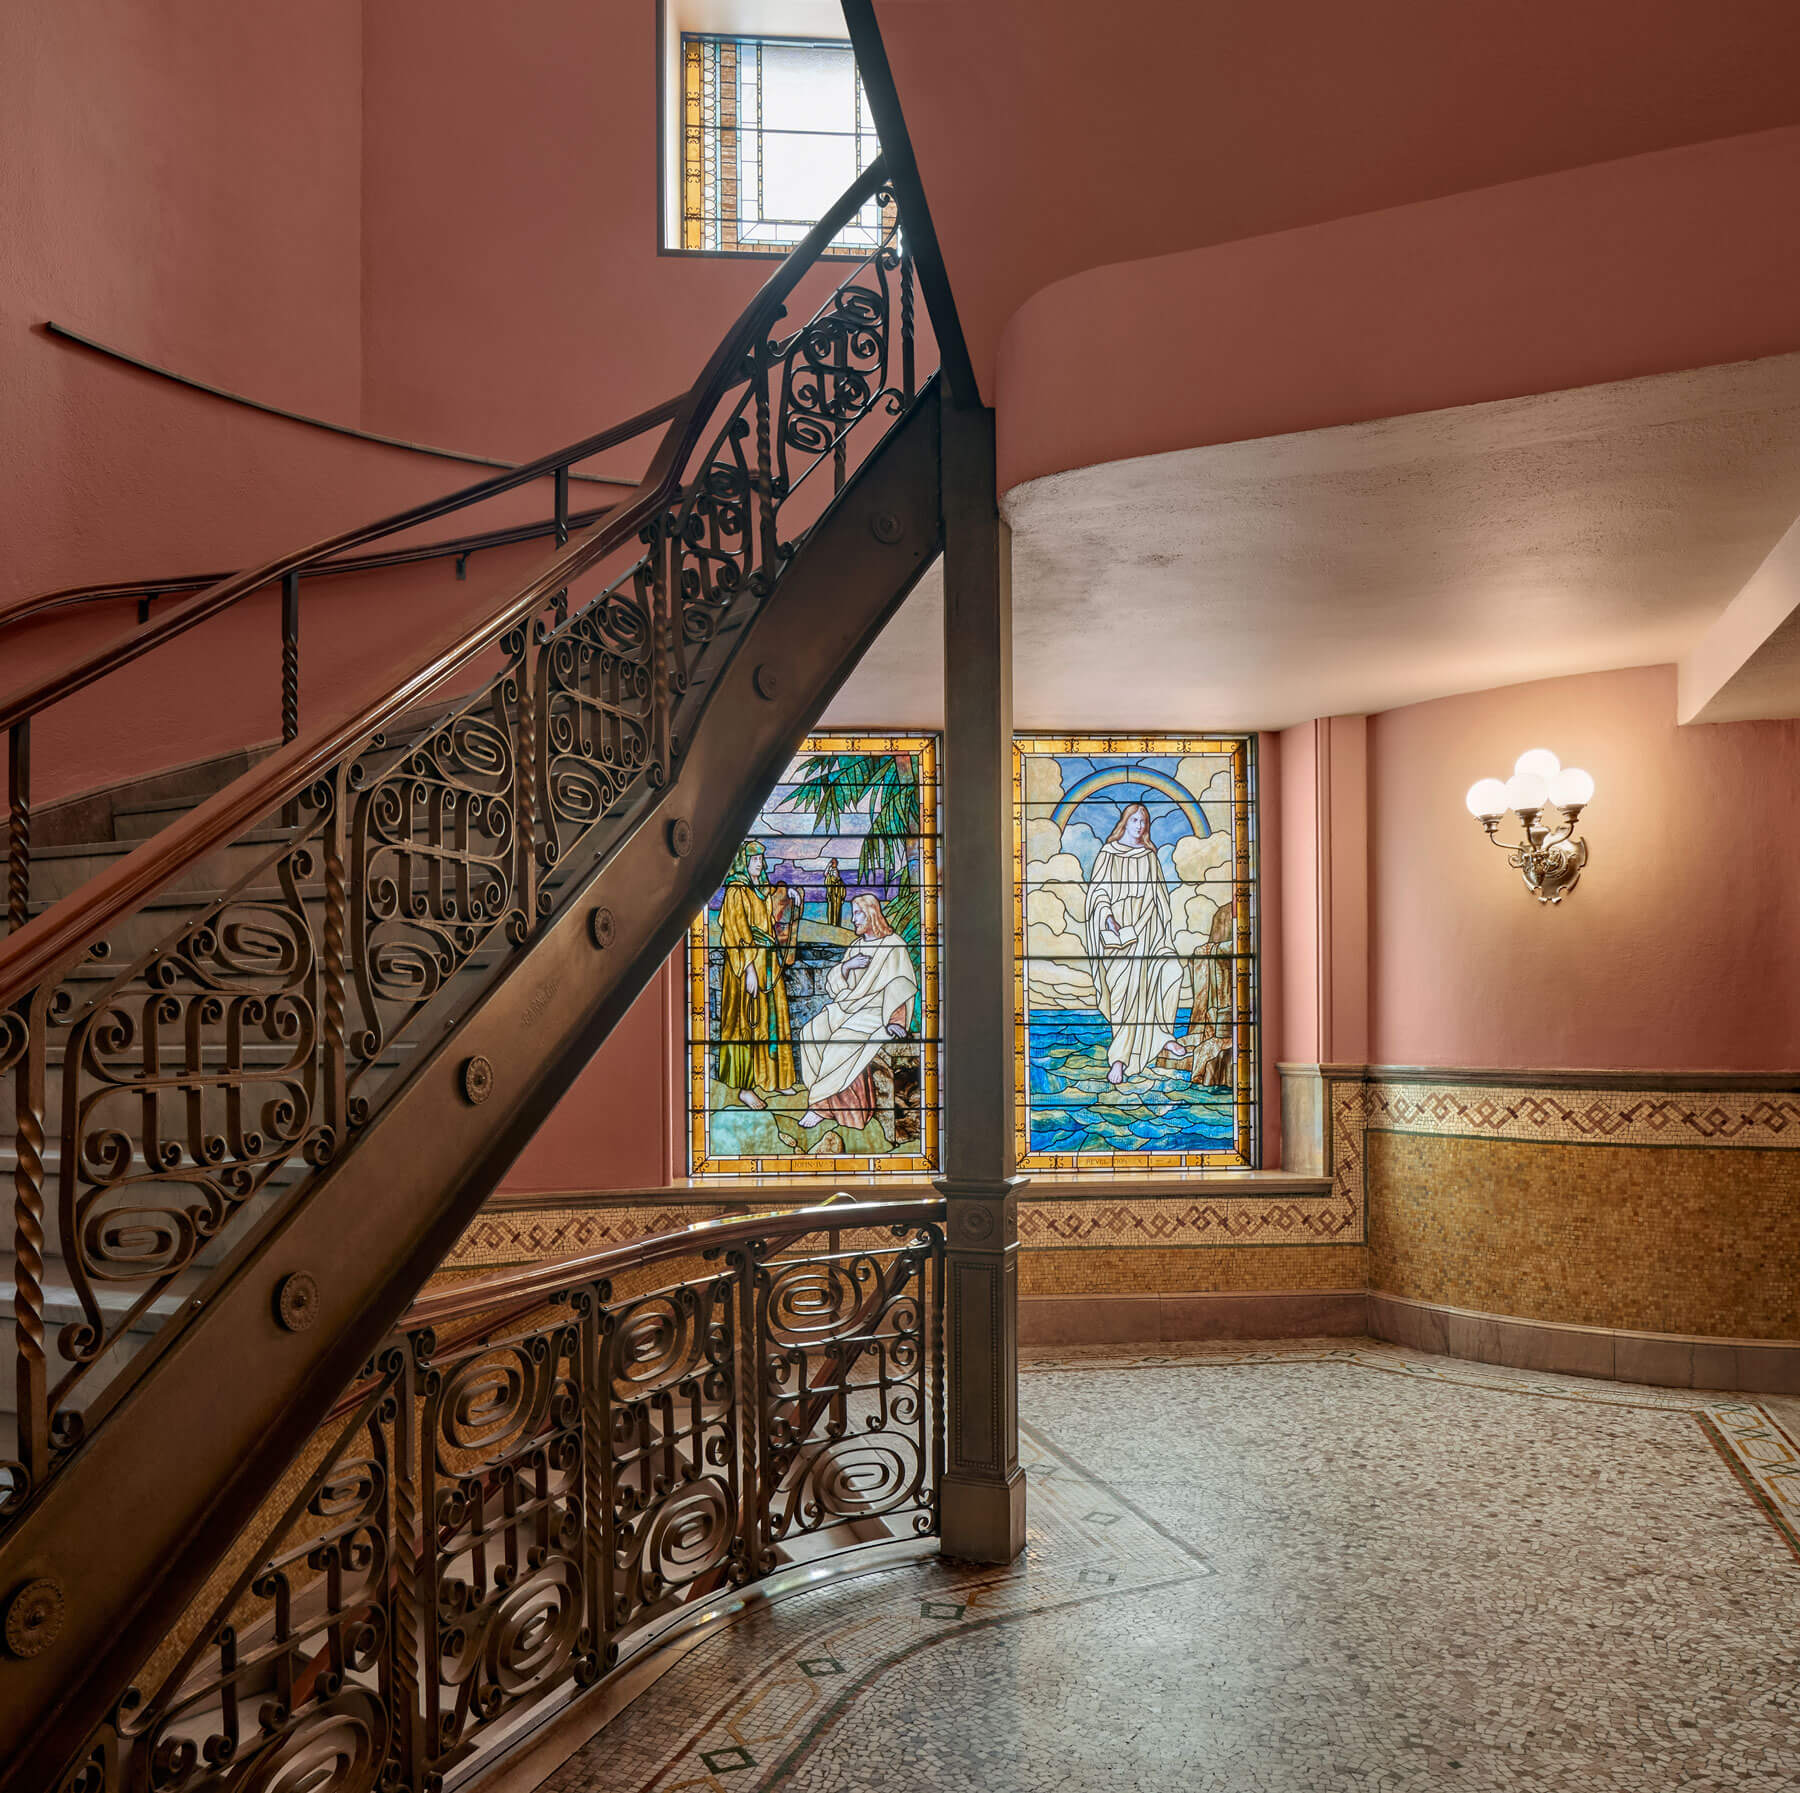 Detailed iron staircase to the right of restored stained glass windows and golden yellow mosaic details and floors.